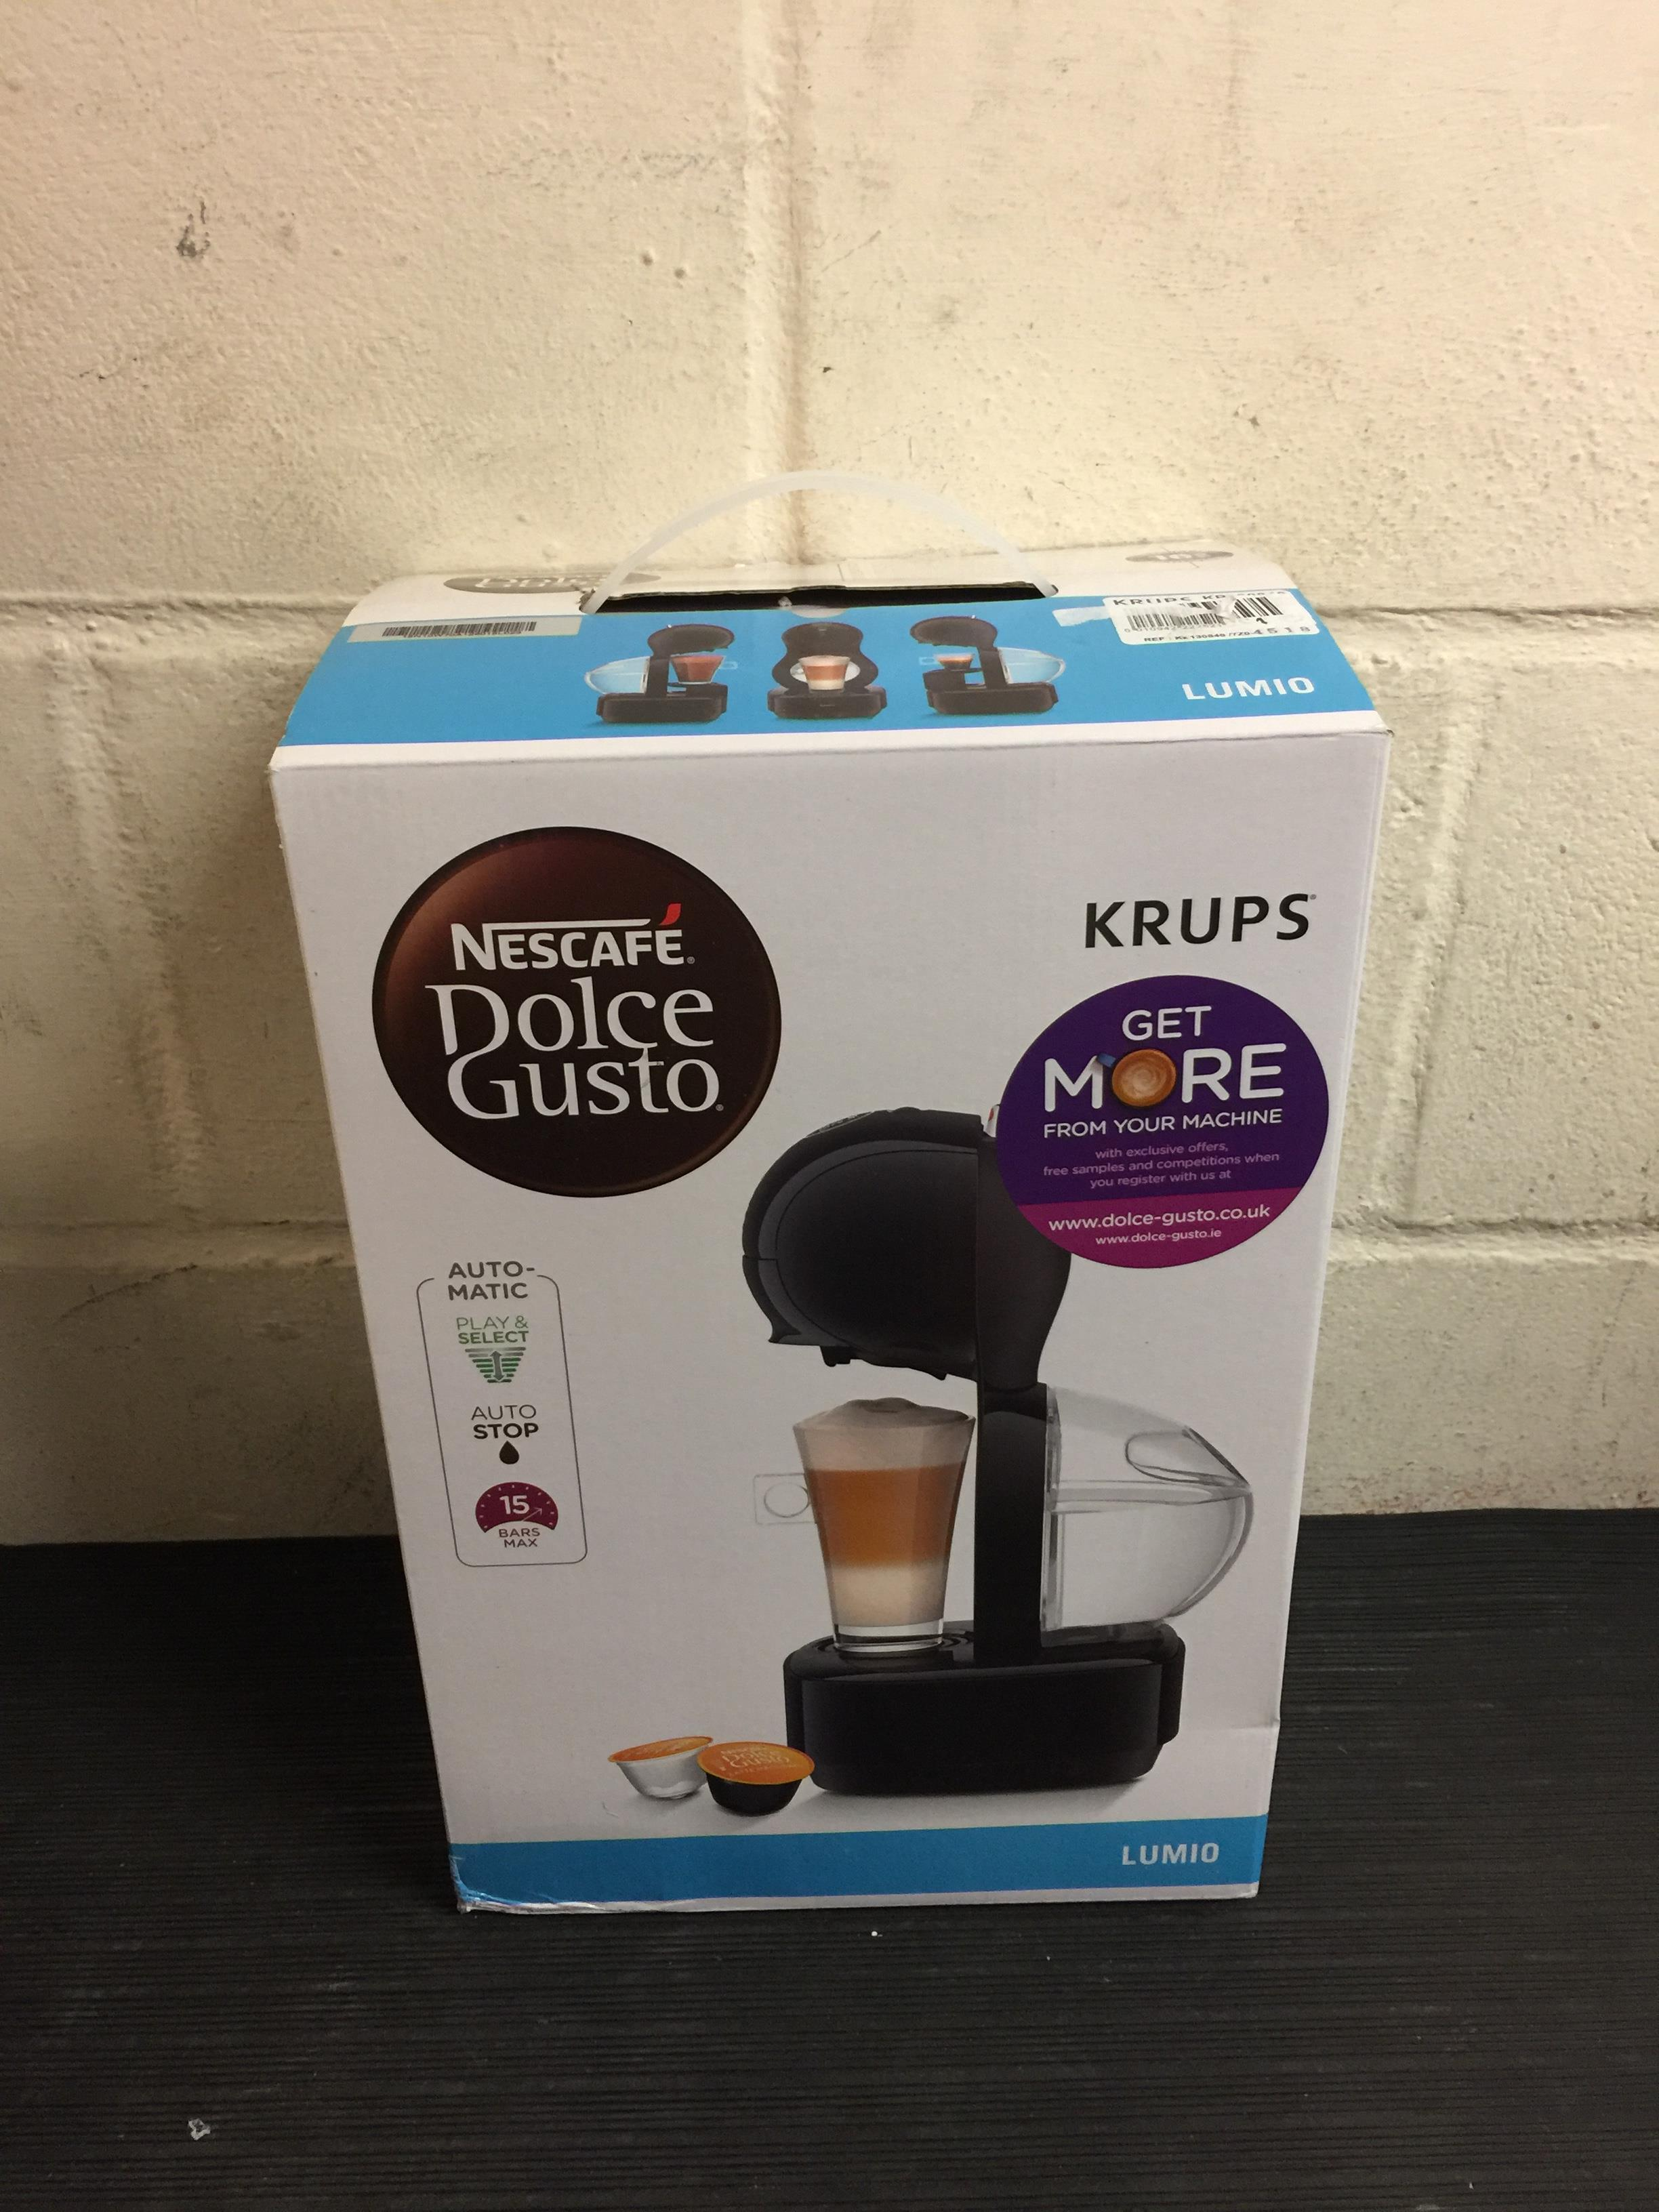 Lot 15 - Nescafé Dolce Gusto Krups Lumio Automatic Coffee Machine RRP £72.99